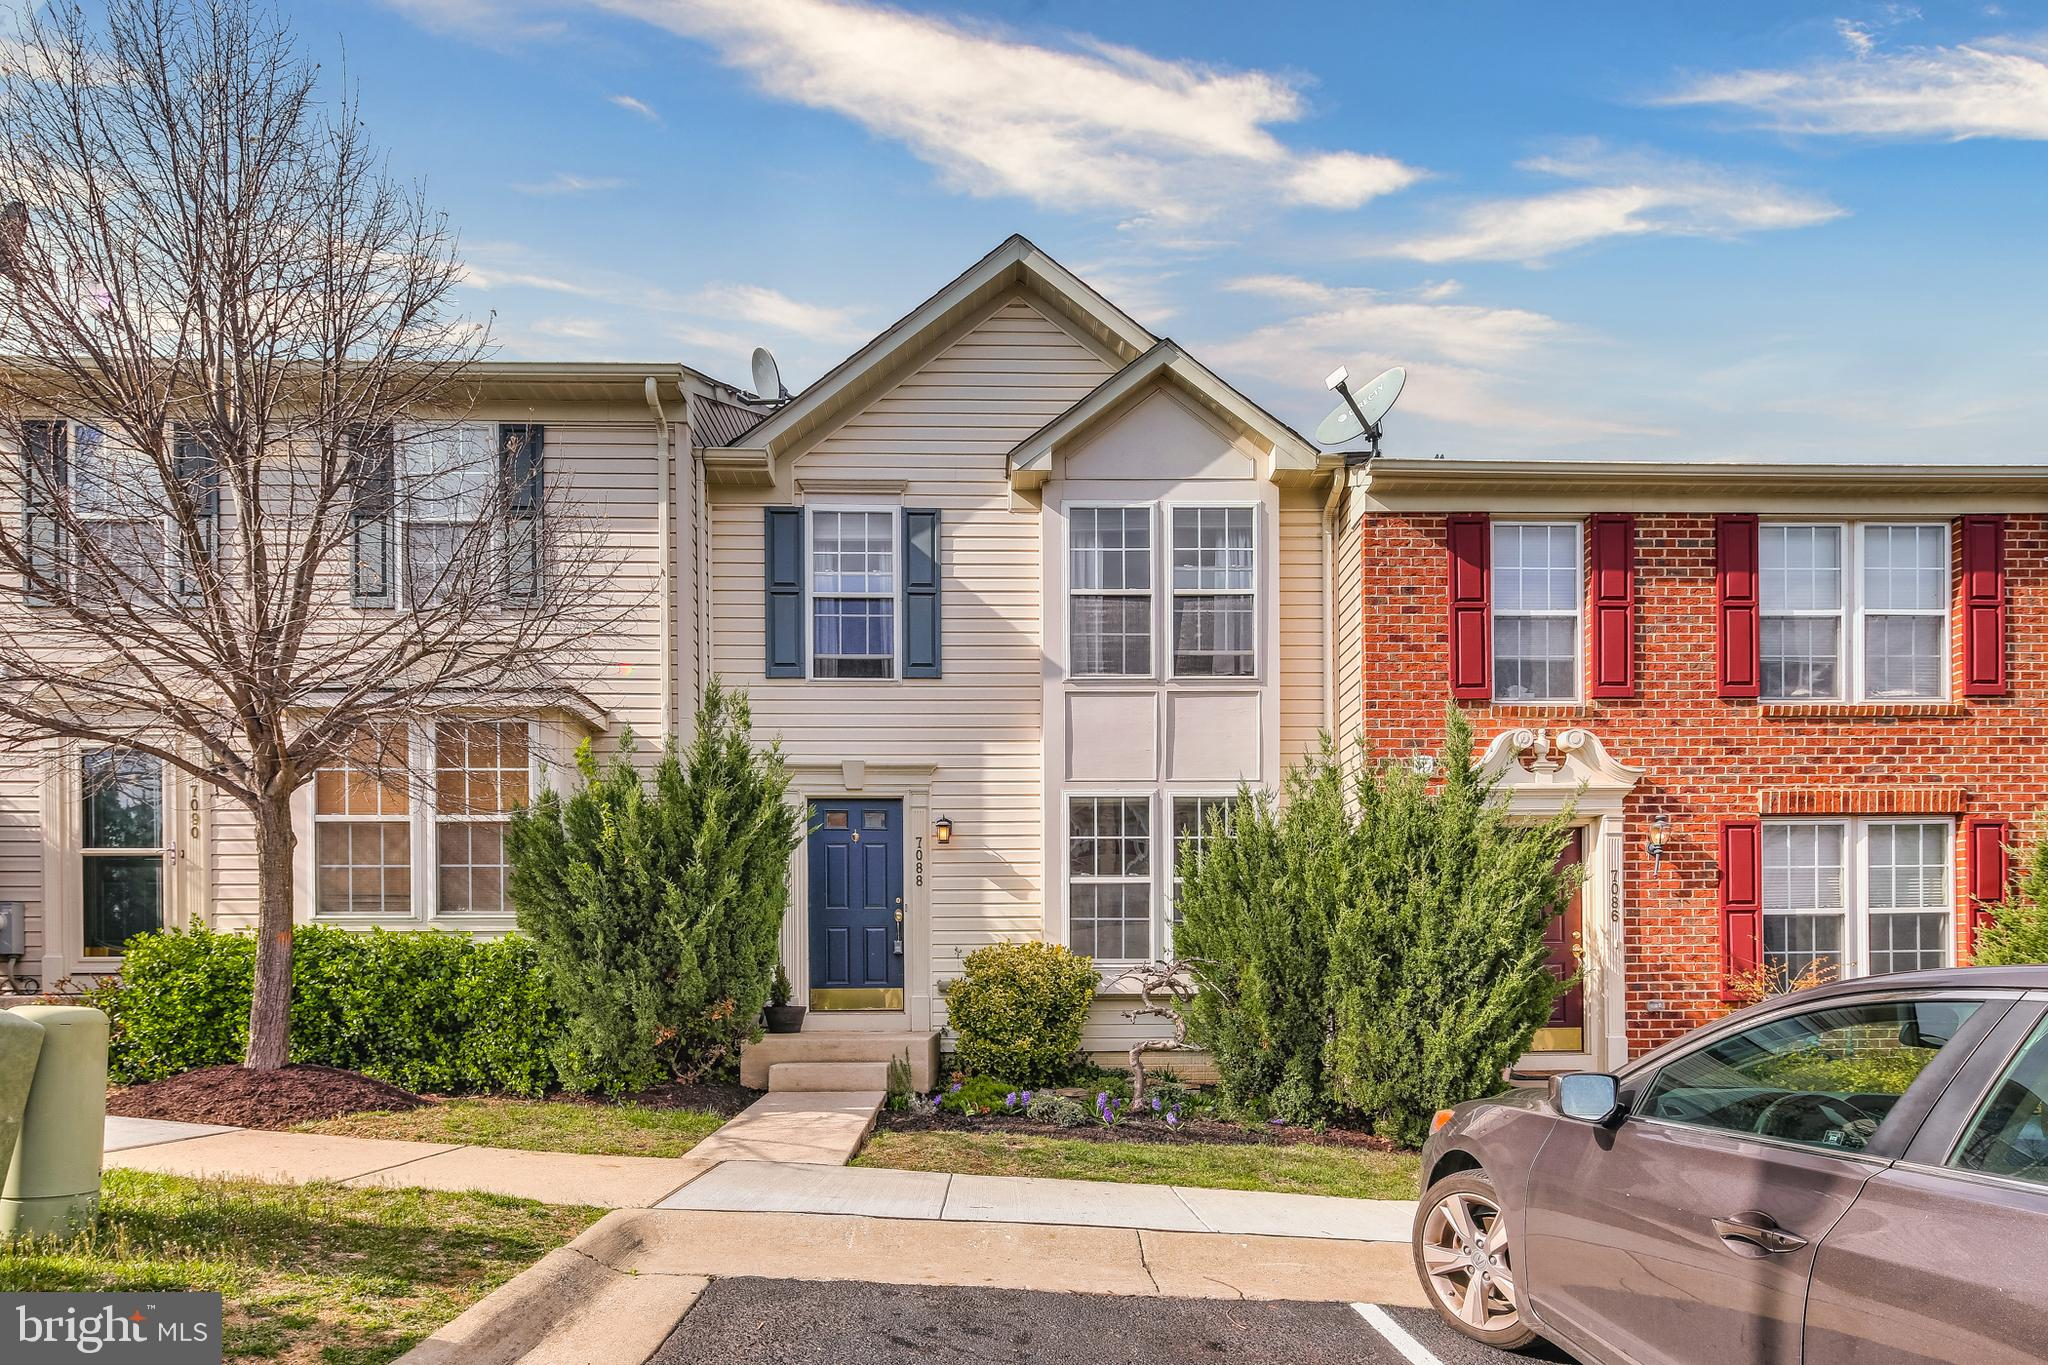 METICULOUSLY MAINTAINED TOWNHOUSE NOW AVAILABLE IN HOWARD COUNTY. THIS 3 BEDROOM 2.5 BATH HOME AIMS